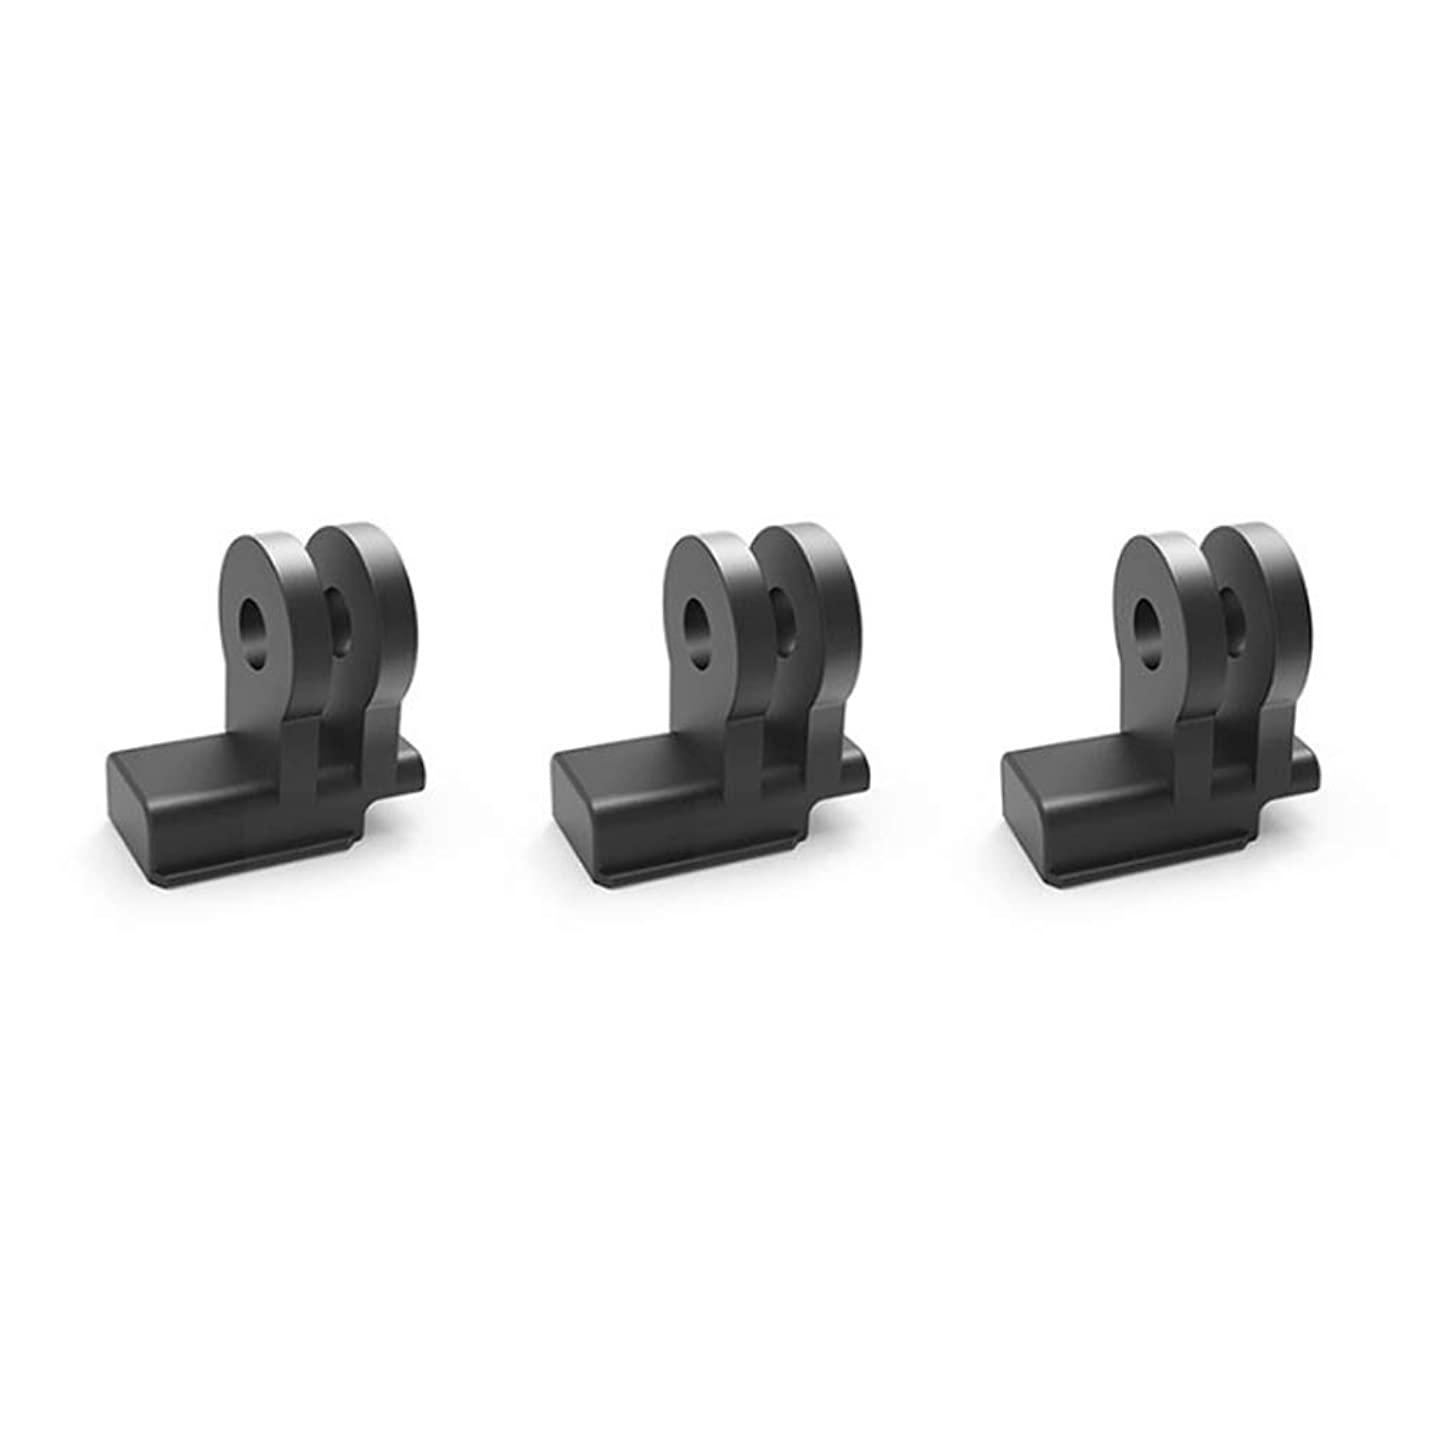 Ngaantyun Osmo Pocket Data Port to Universal Mount Camera Accessories Compatible with DJI Osmo Pocket